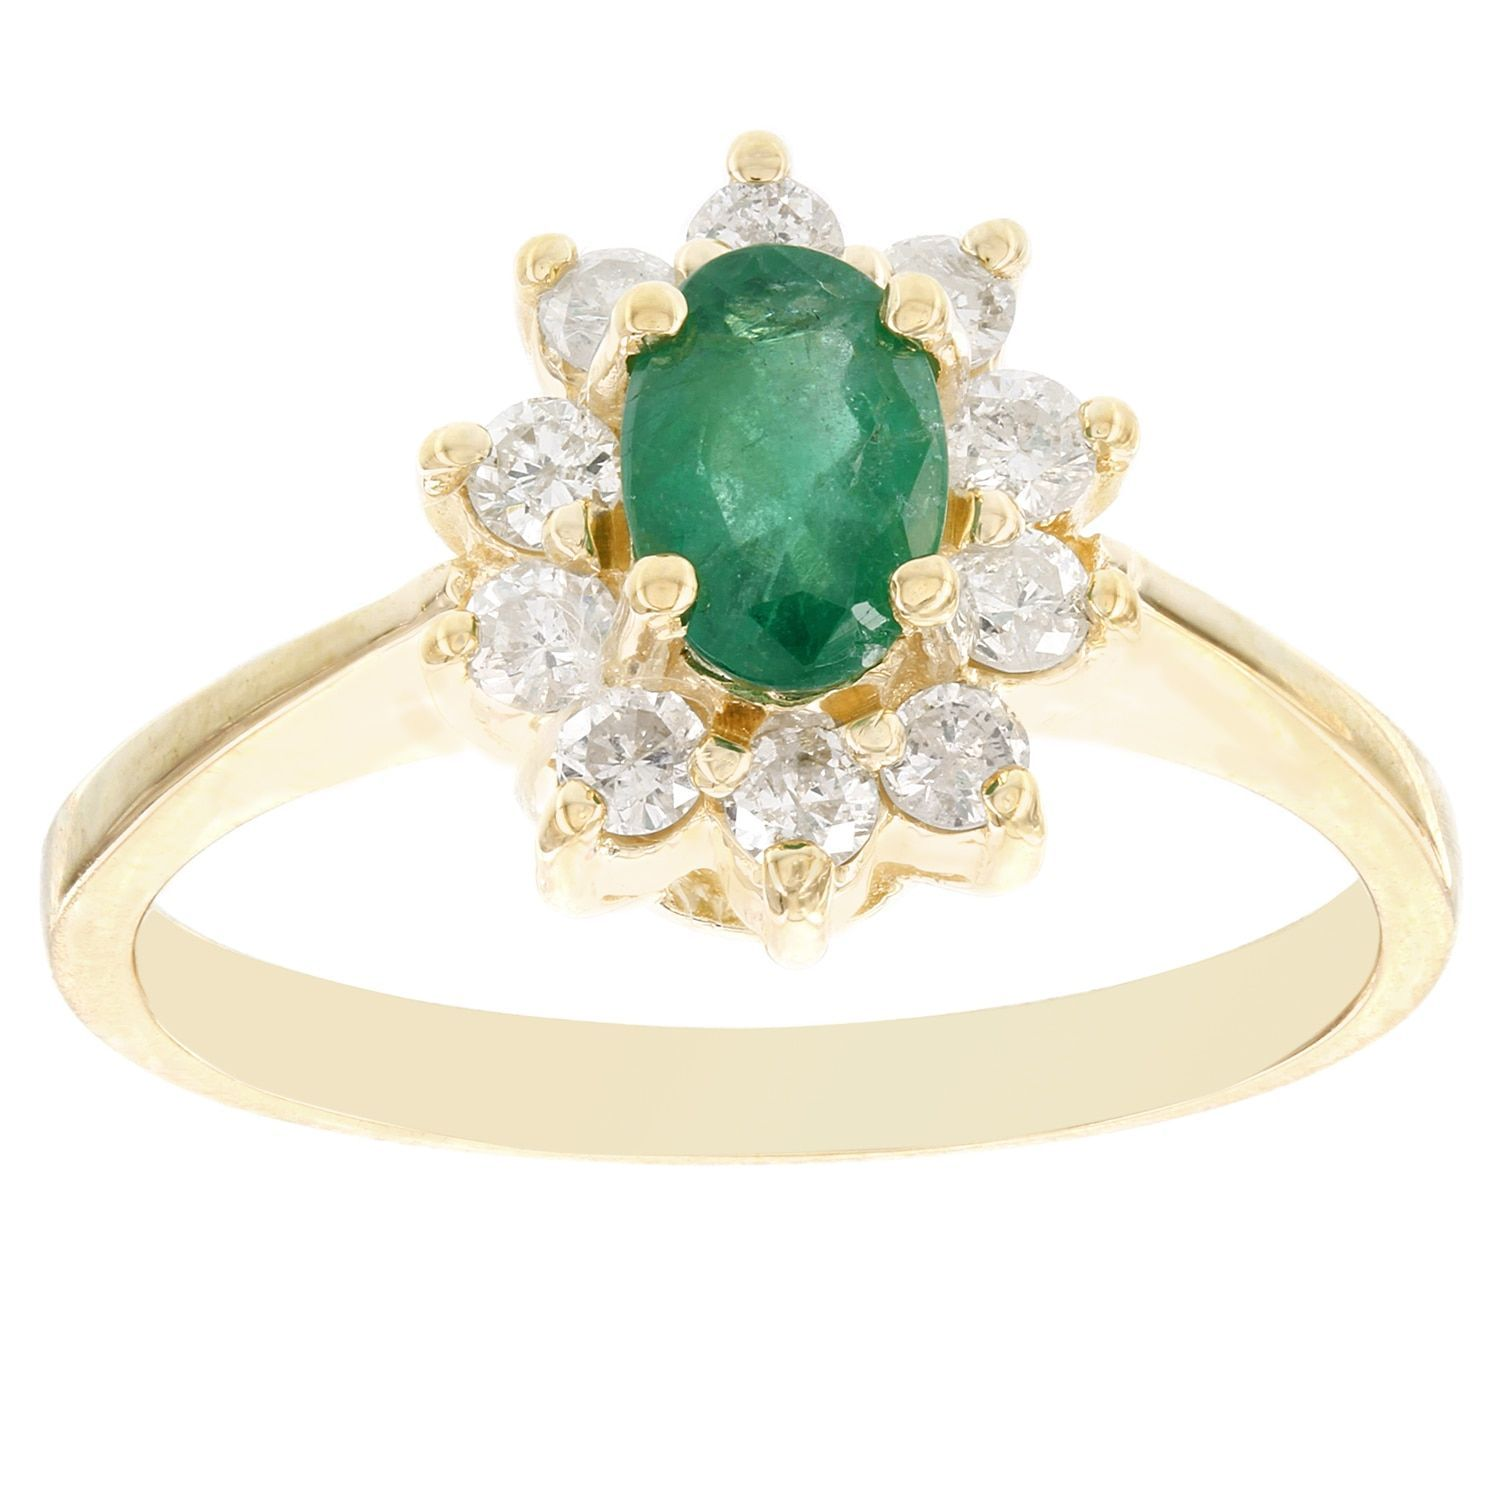 precieuse product copie scale subsampling diamond shop green em emerald crop upscale blanc false v rings collection and ring djula gemstone